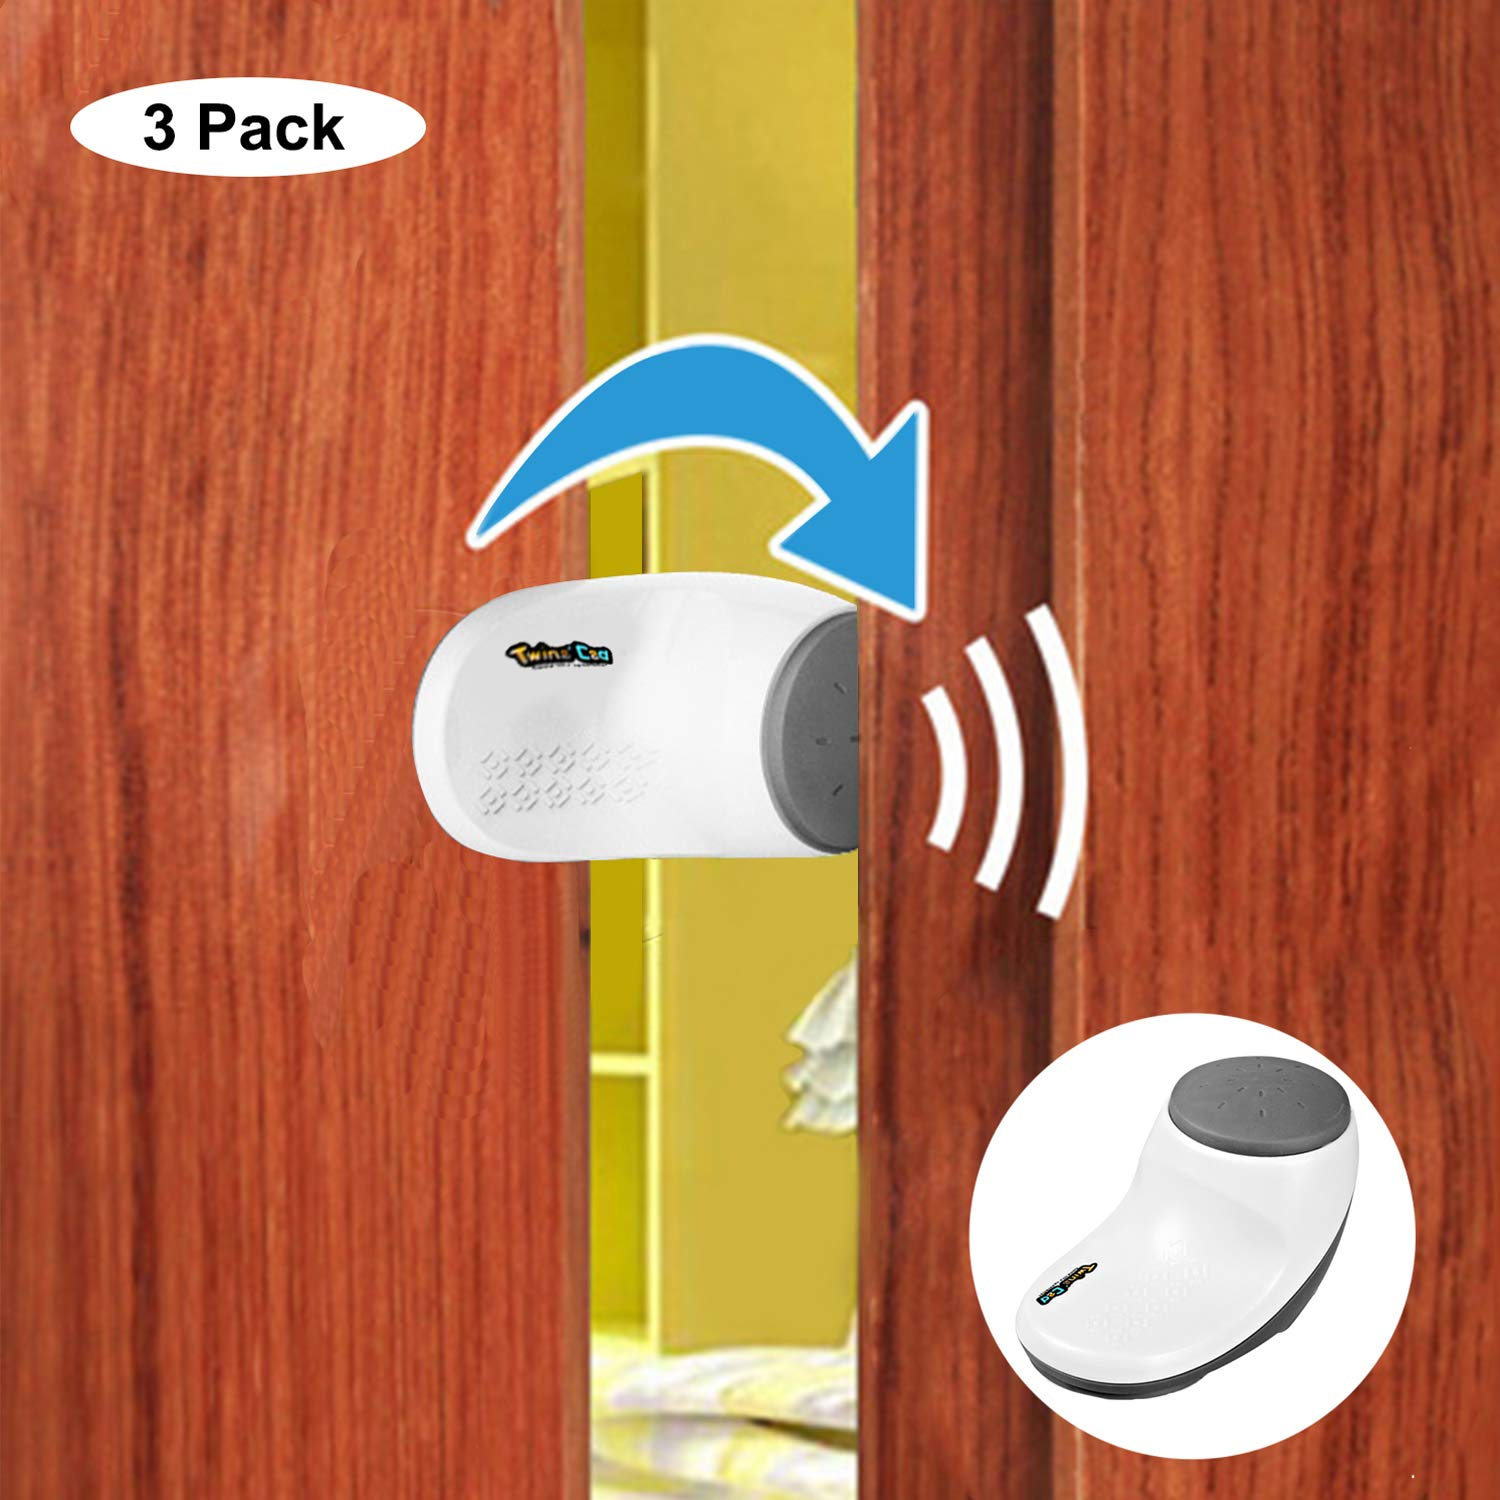 Child Door Stoppers, Finger Pinch Guard, Child Safety Door Pinch Guard, Pet Door Stopper,3 Pack